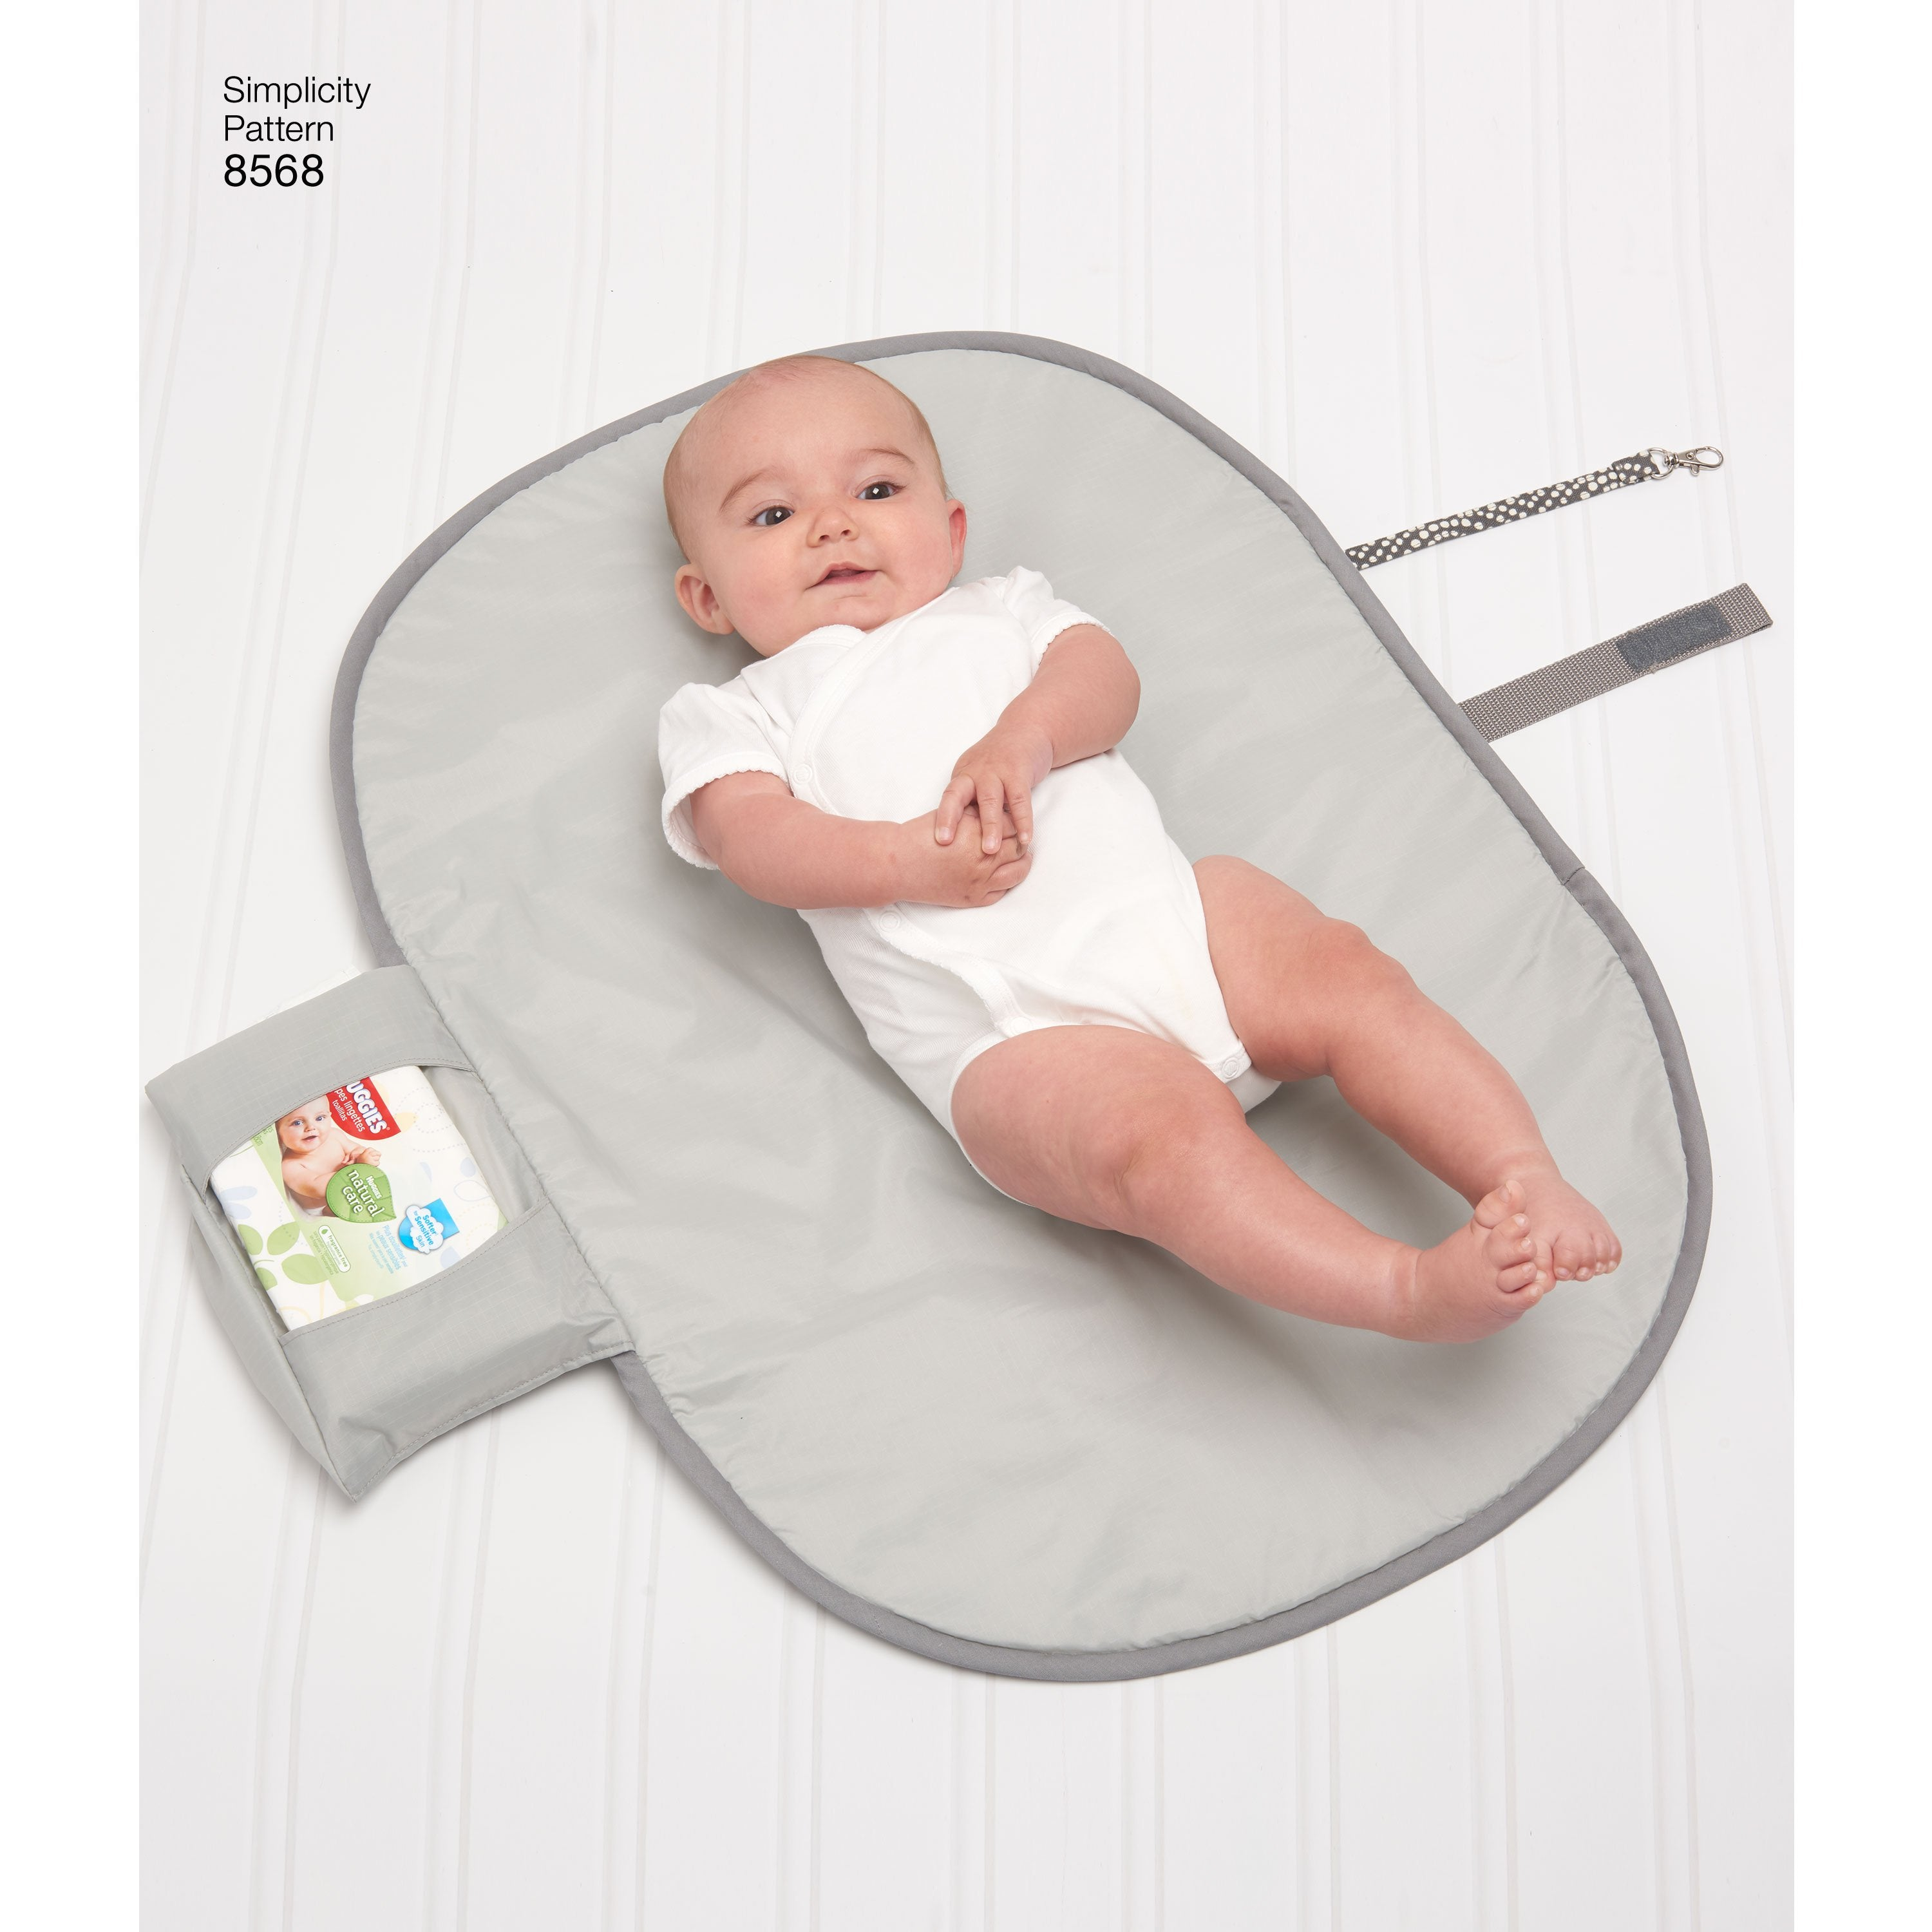 Simplicity Pattern 8568 Baby Accessories Jaycotts Co Uk